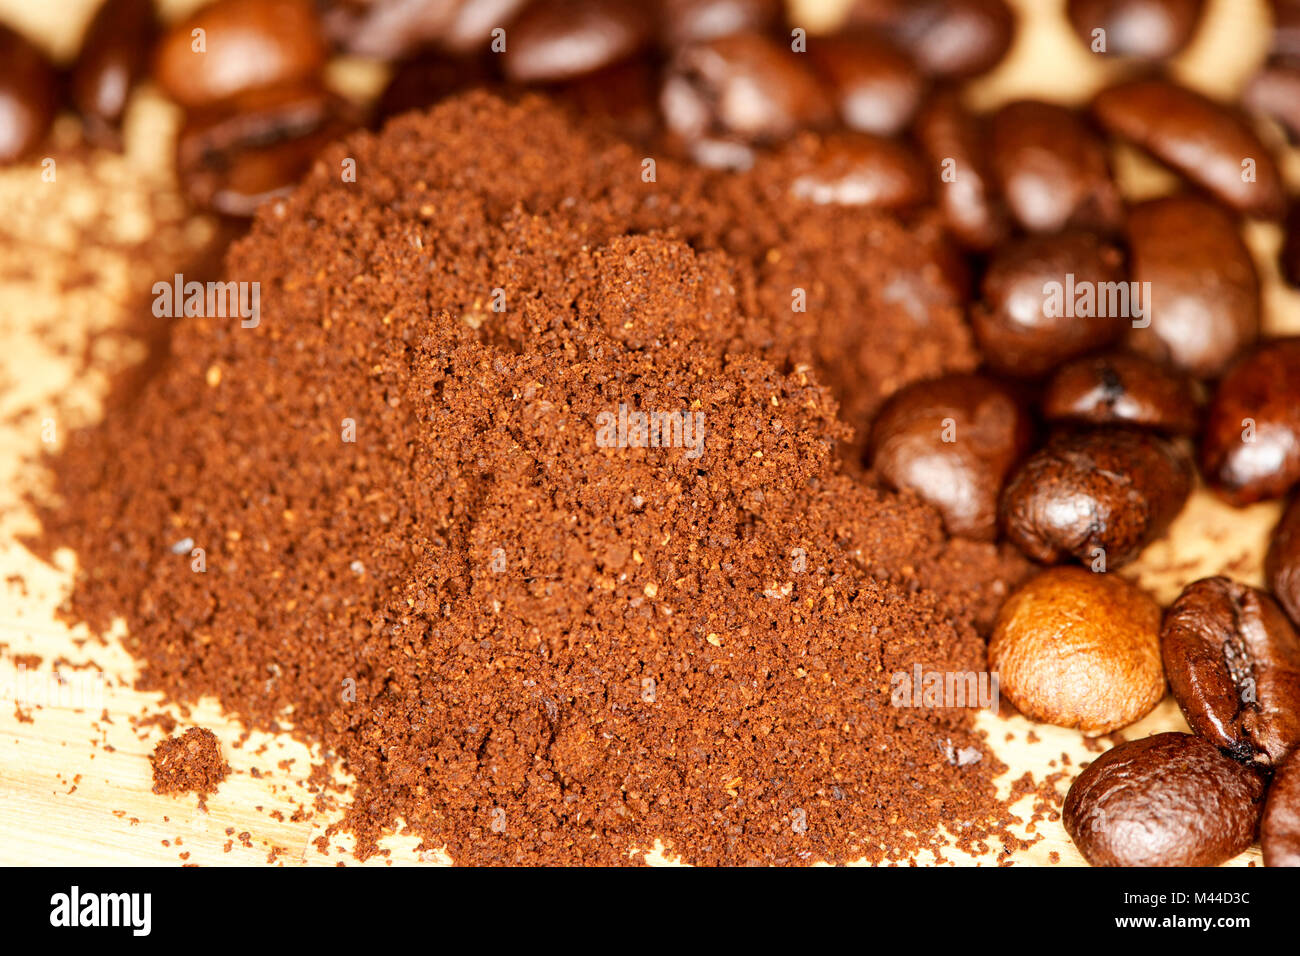 coarse grind freshly ground coffee and coffee bean blend of arabica and robusta beans - Stock Image